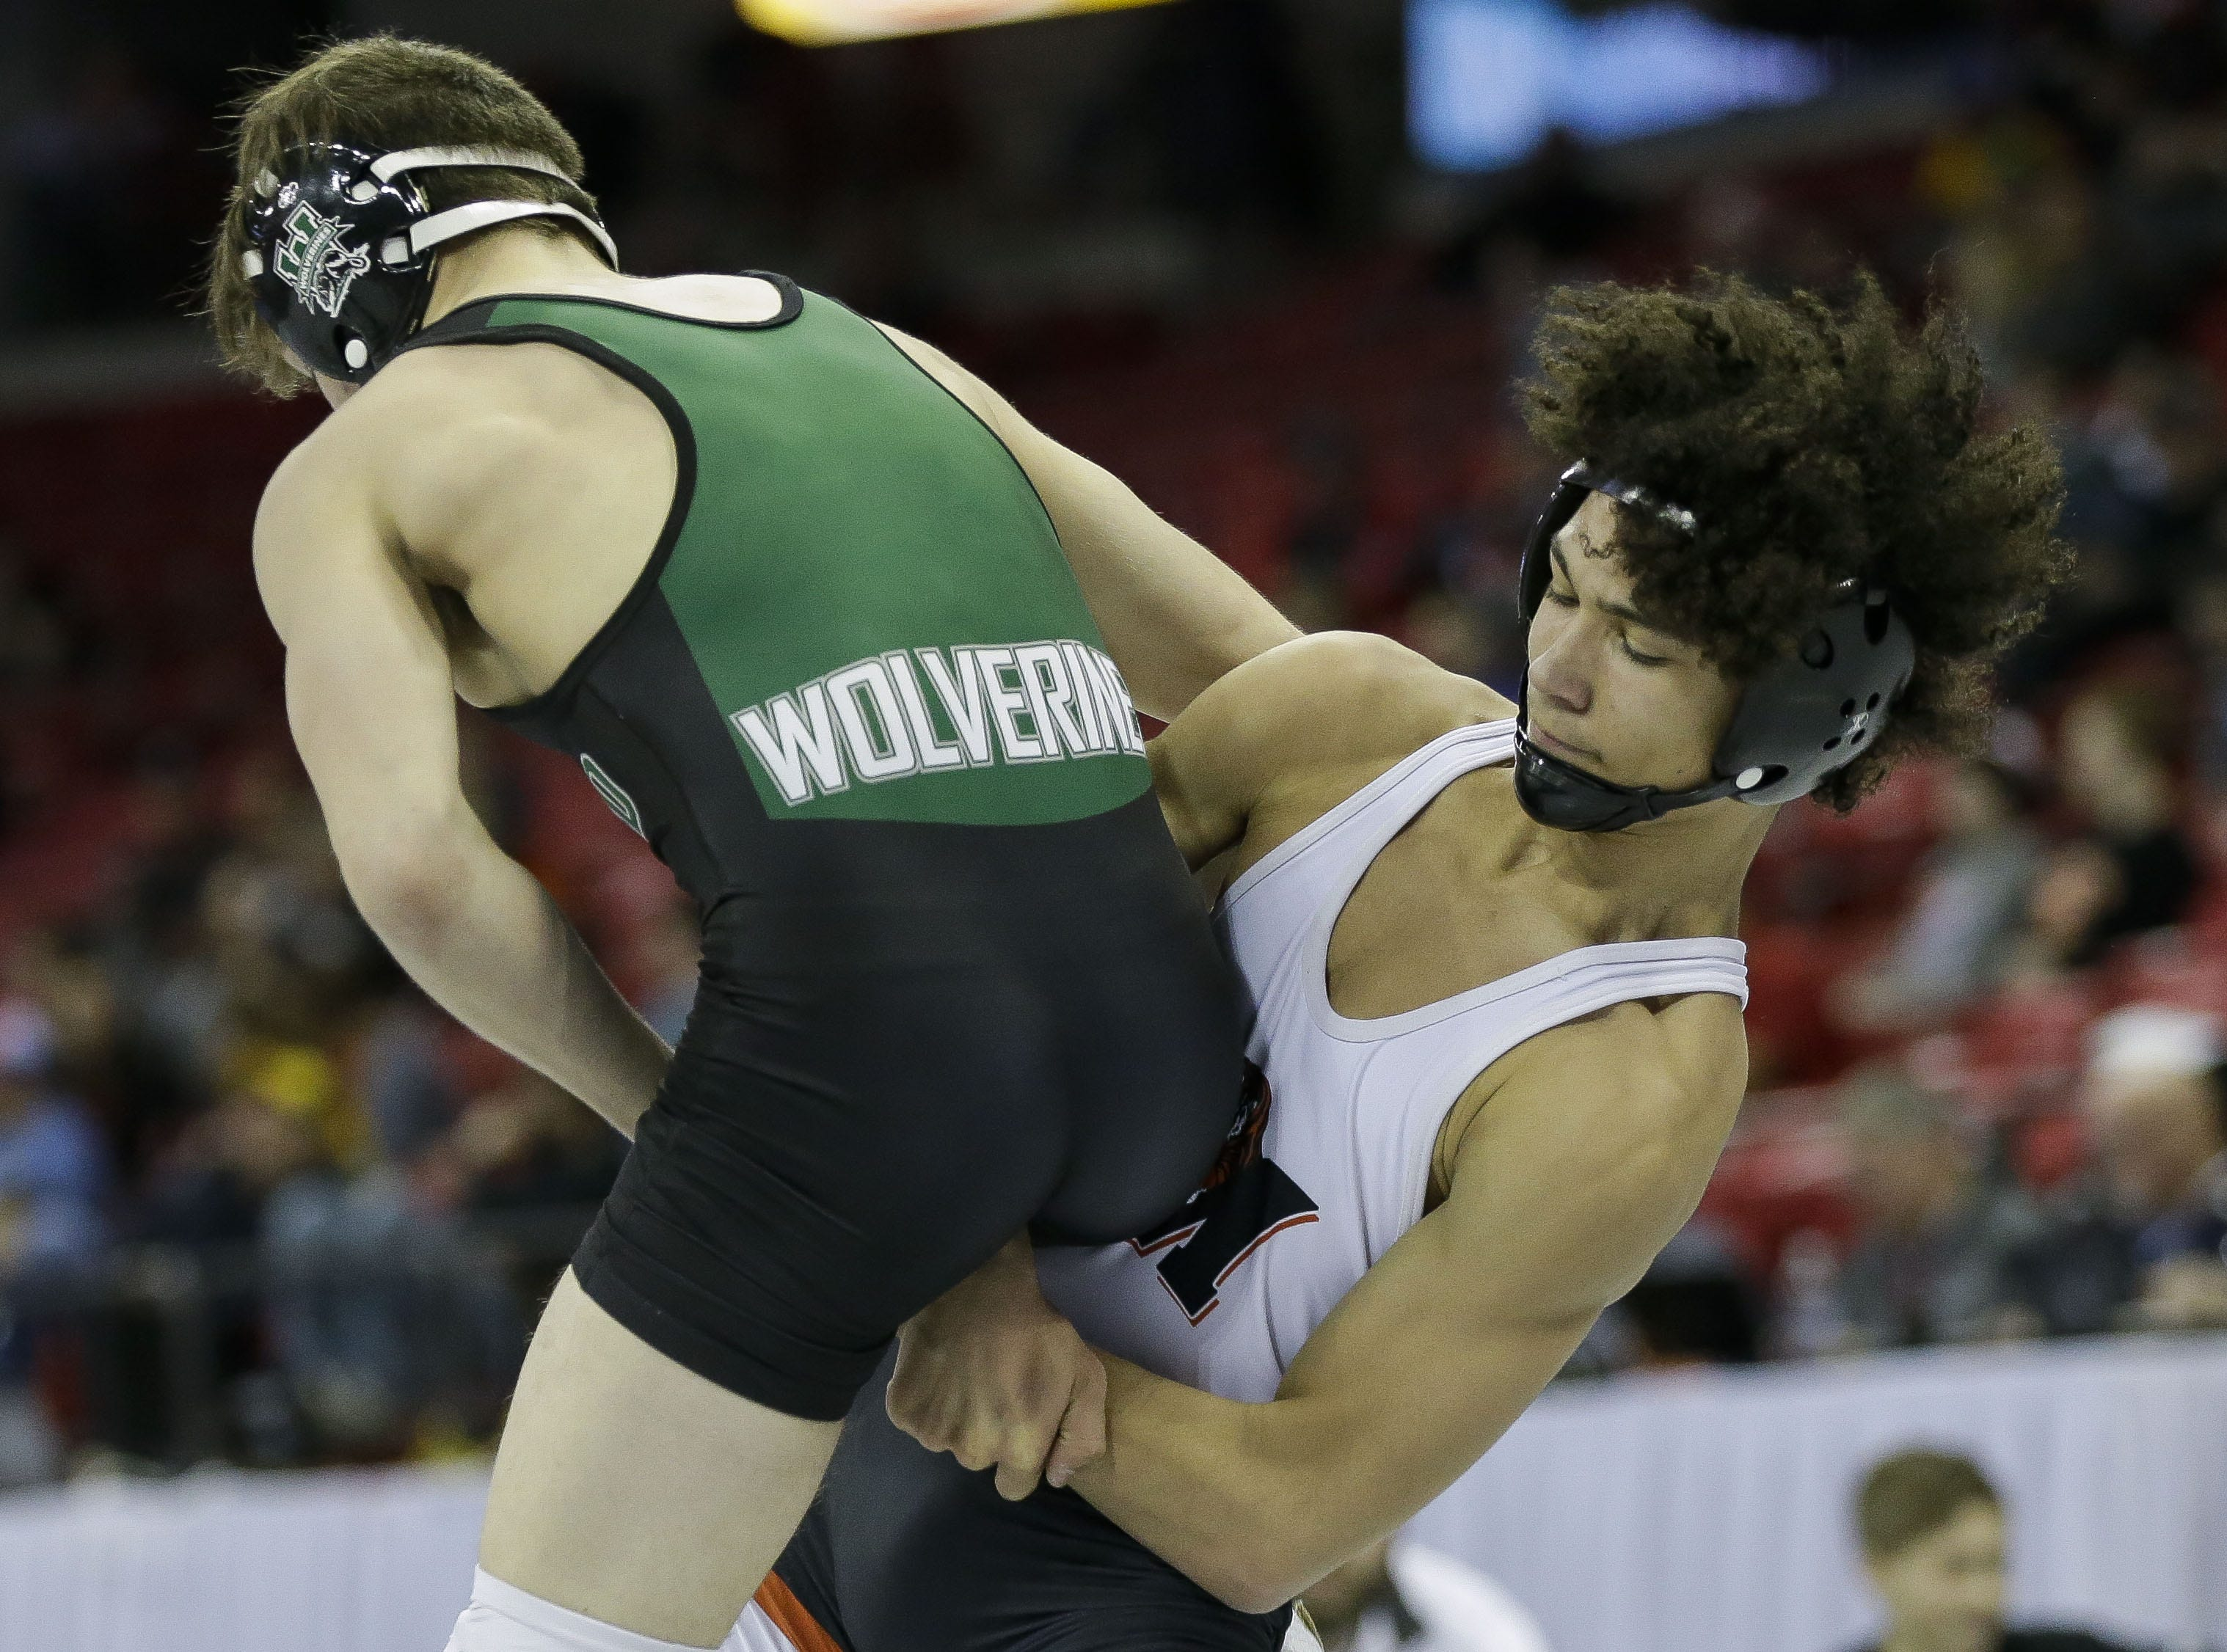 Marshfield's Gabe Pugh wrestles against Waterford's Joshua Cherba in a Division 1 126-pound preliminary match during the WIAA state wrestling tournament on Thursday, February 21, 2019, at the Kohl Center in Madison, Wis. Tork Mason/USA TODAY NETWORK-Wisconsin